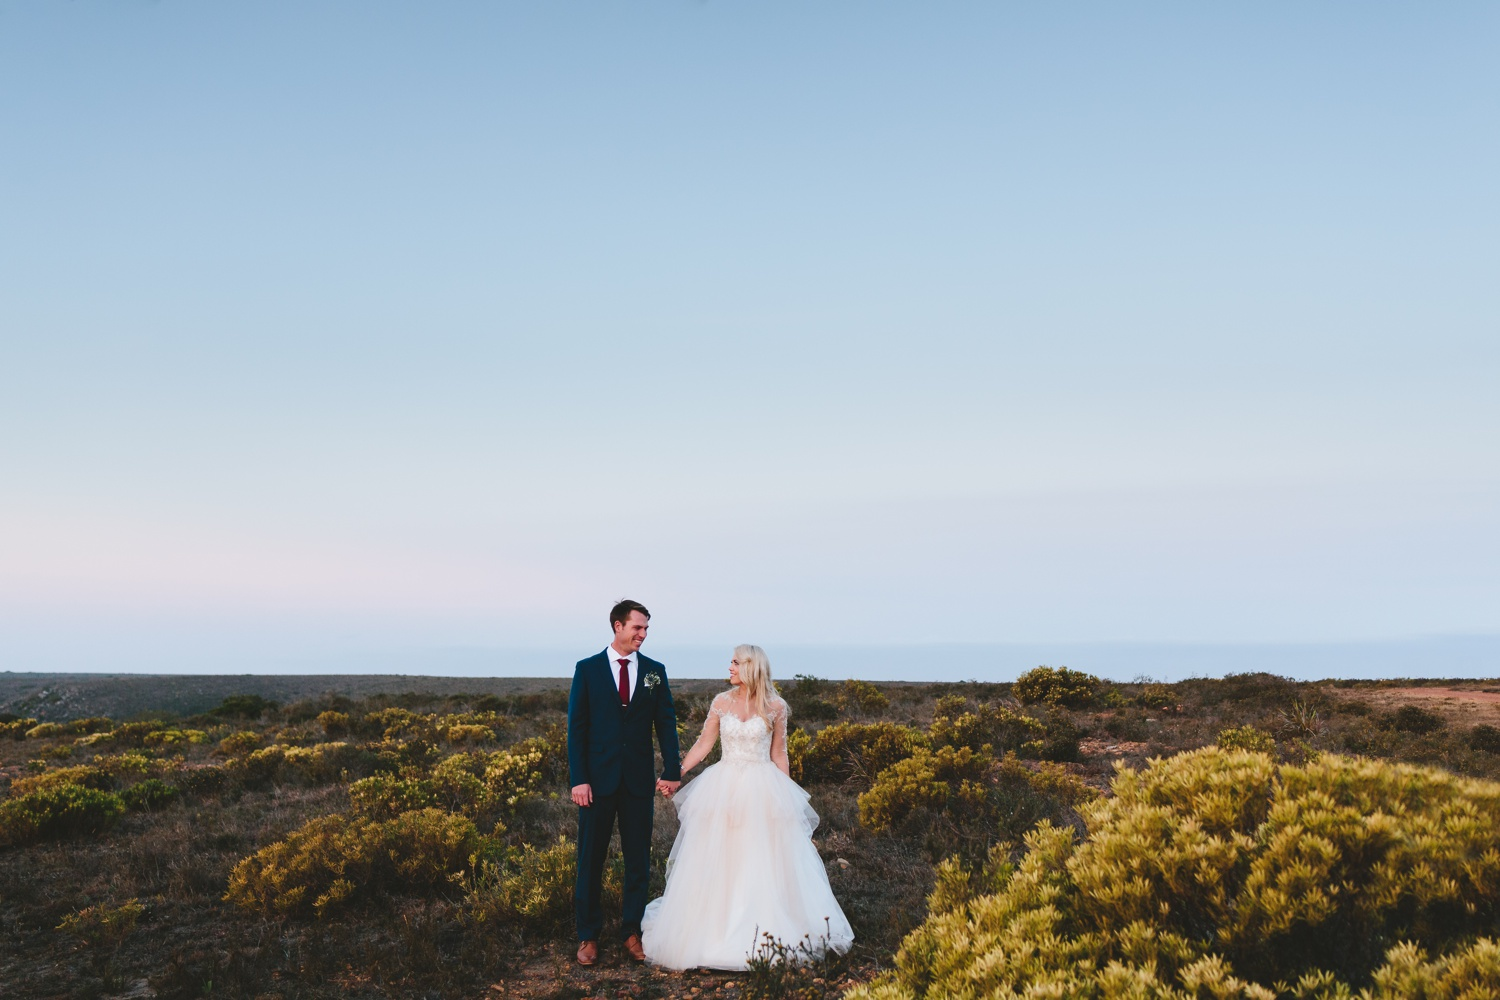 cathryn_warwick_wearecharlieray_hopewell_conservation_eastern_cape_wedding_0120.jpg